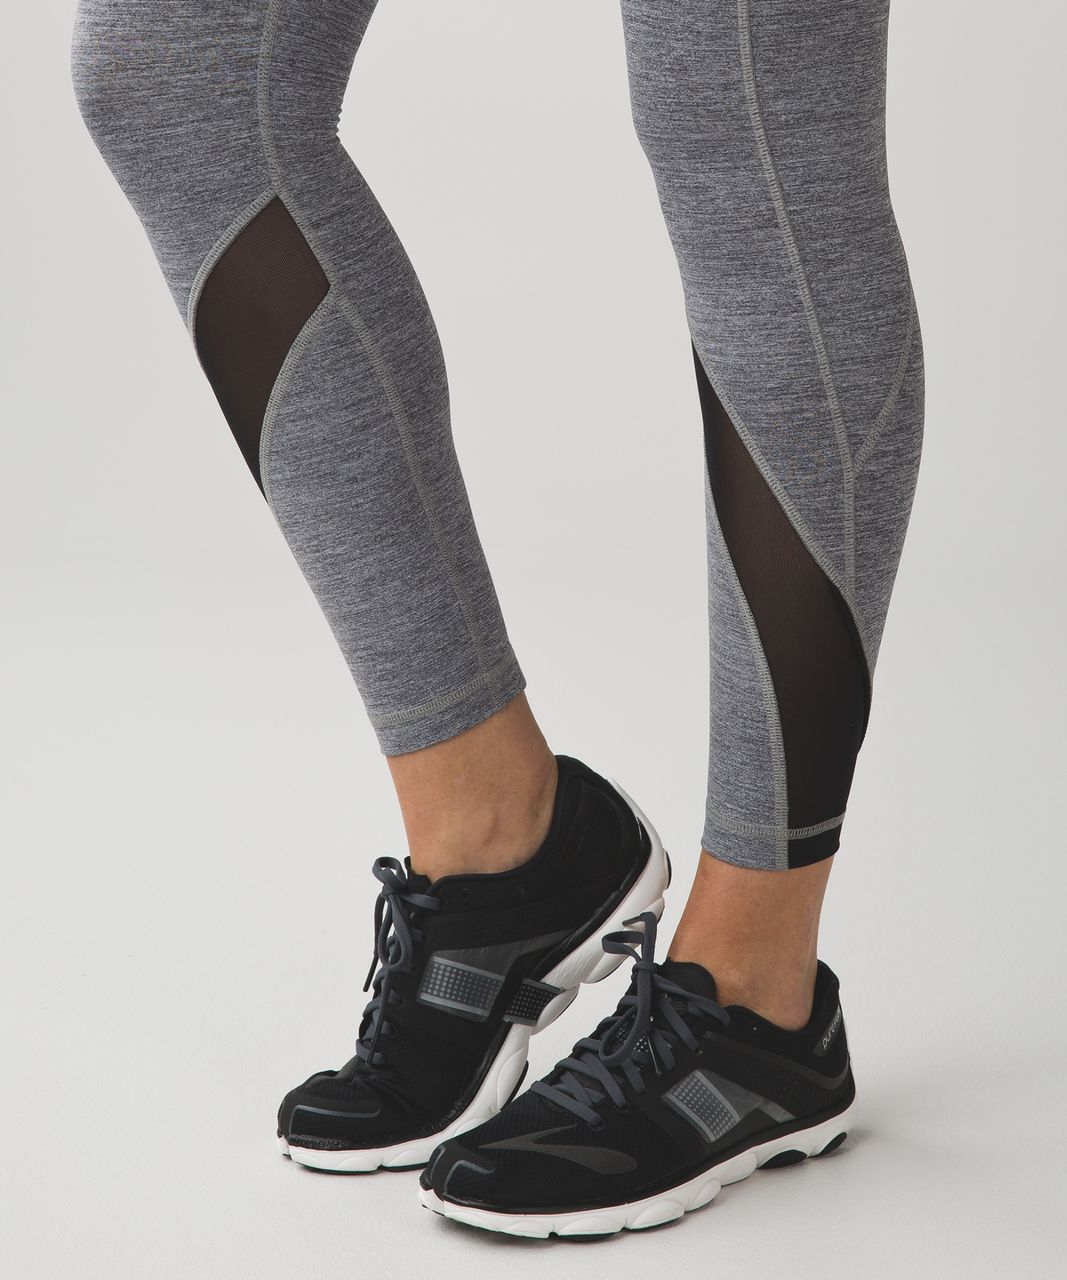 Lululemon Inspire Tight II (Mesh) - Space Dye Camo Black Dark Slate